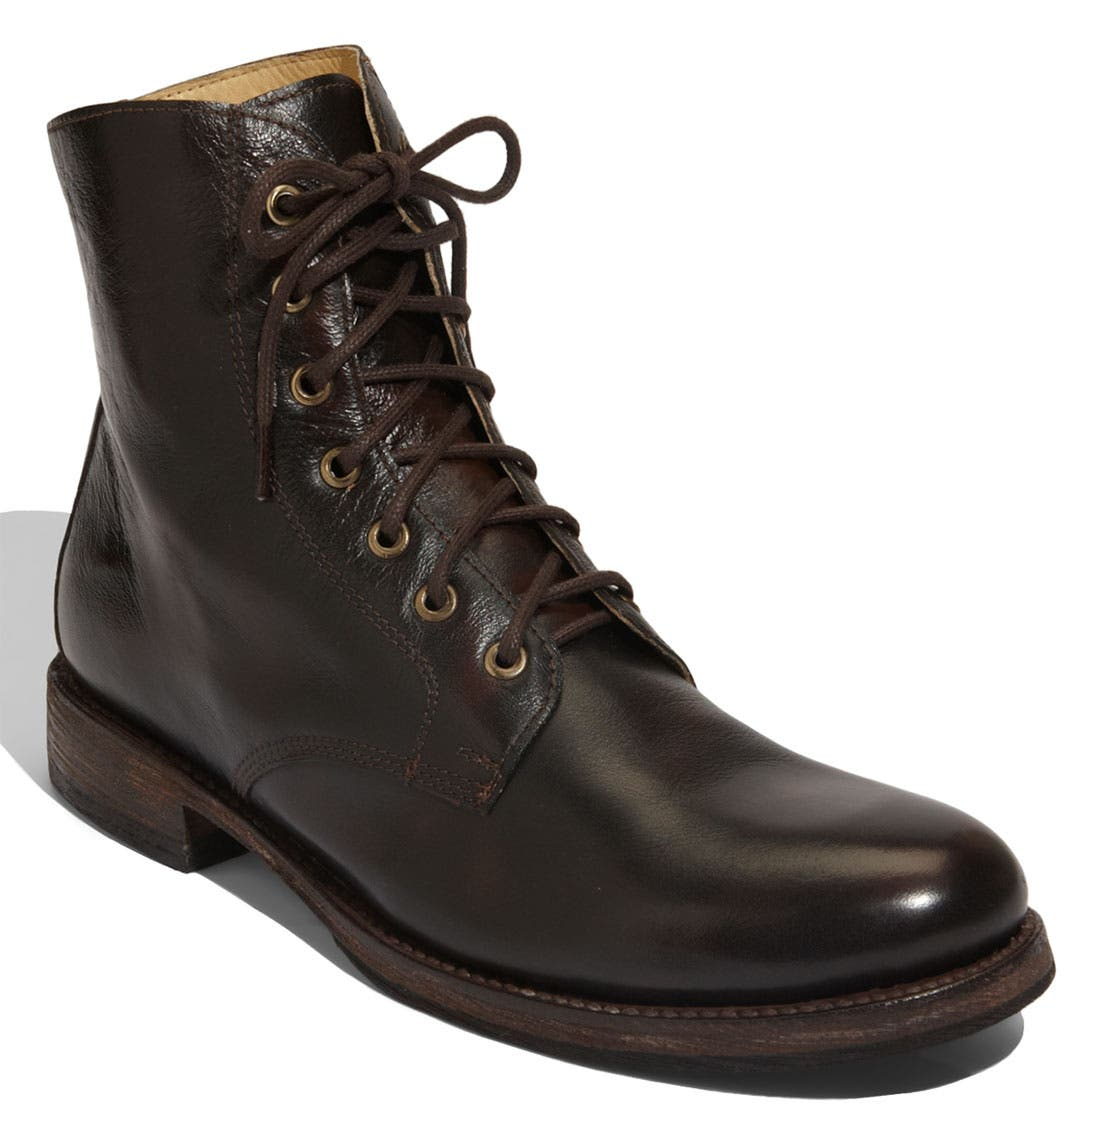 Main Image - Bed Stu Post Boot (Men)